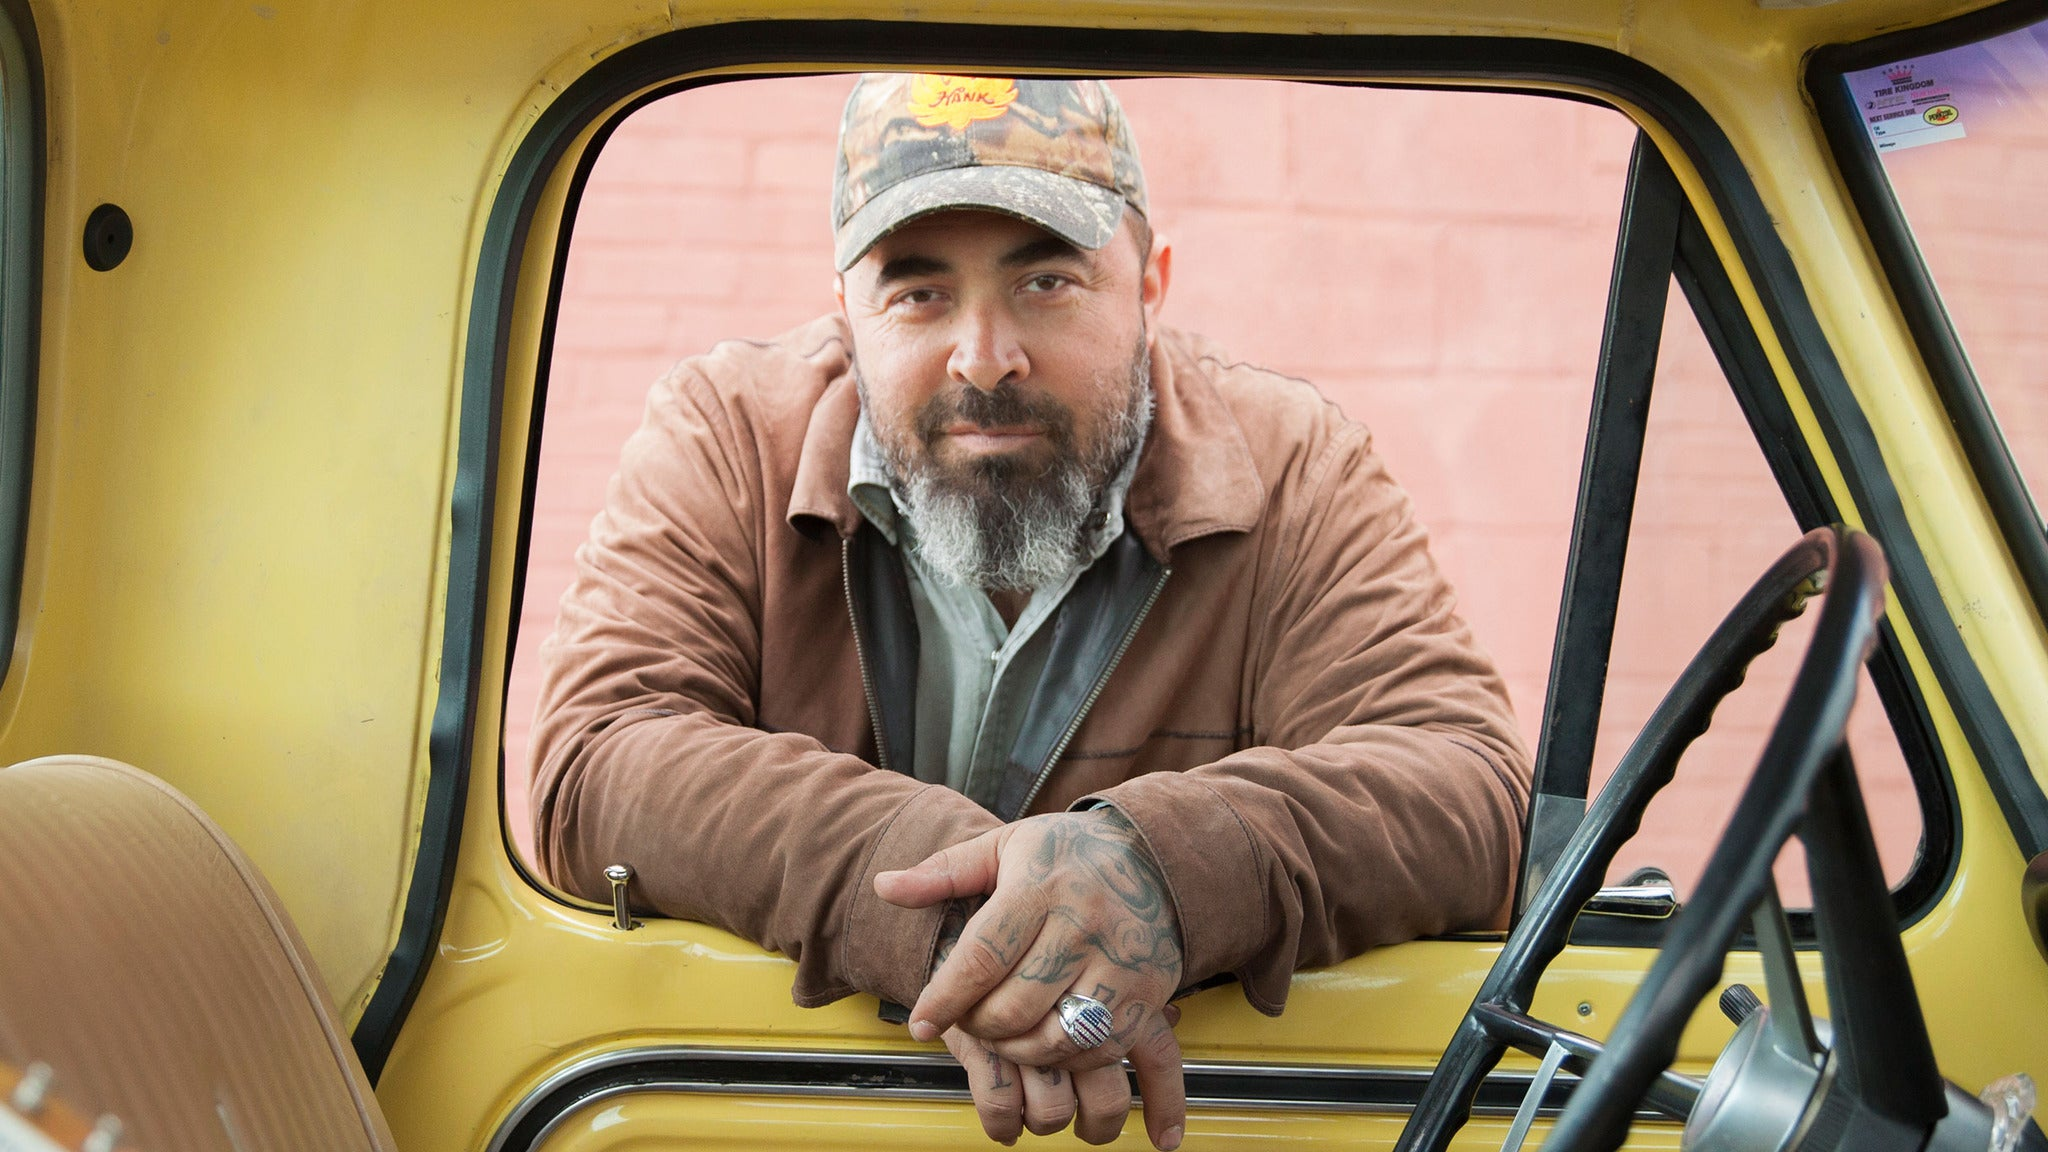 Aaron Lewis at Anthem - Hard Rock Hotel & Casino Sioux City